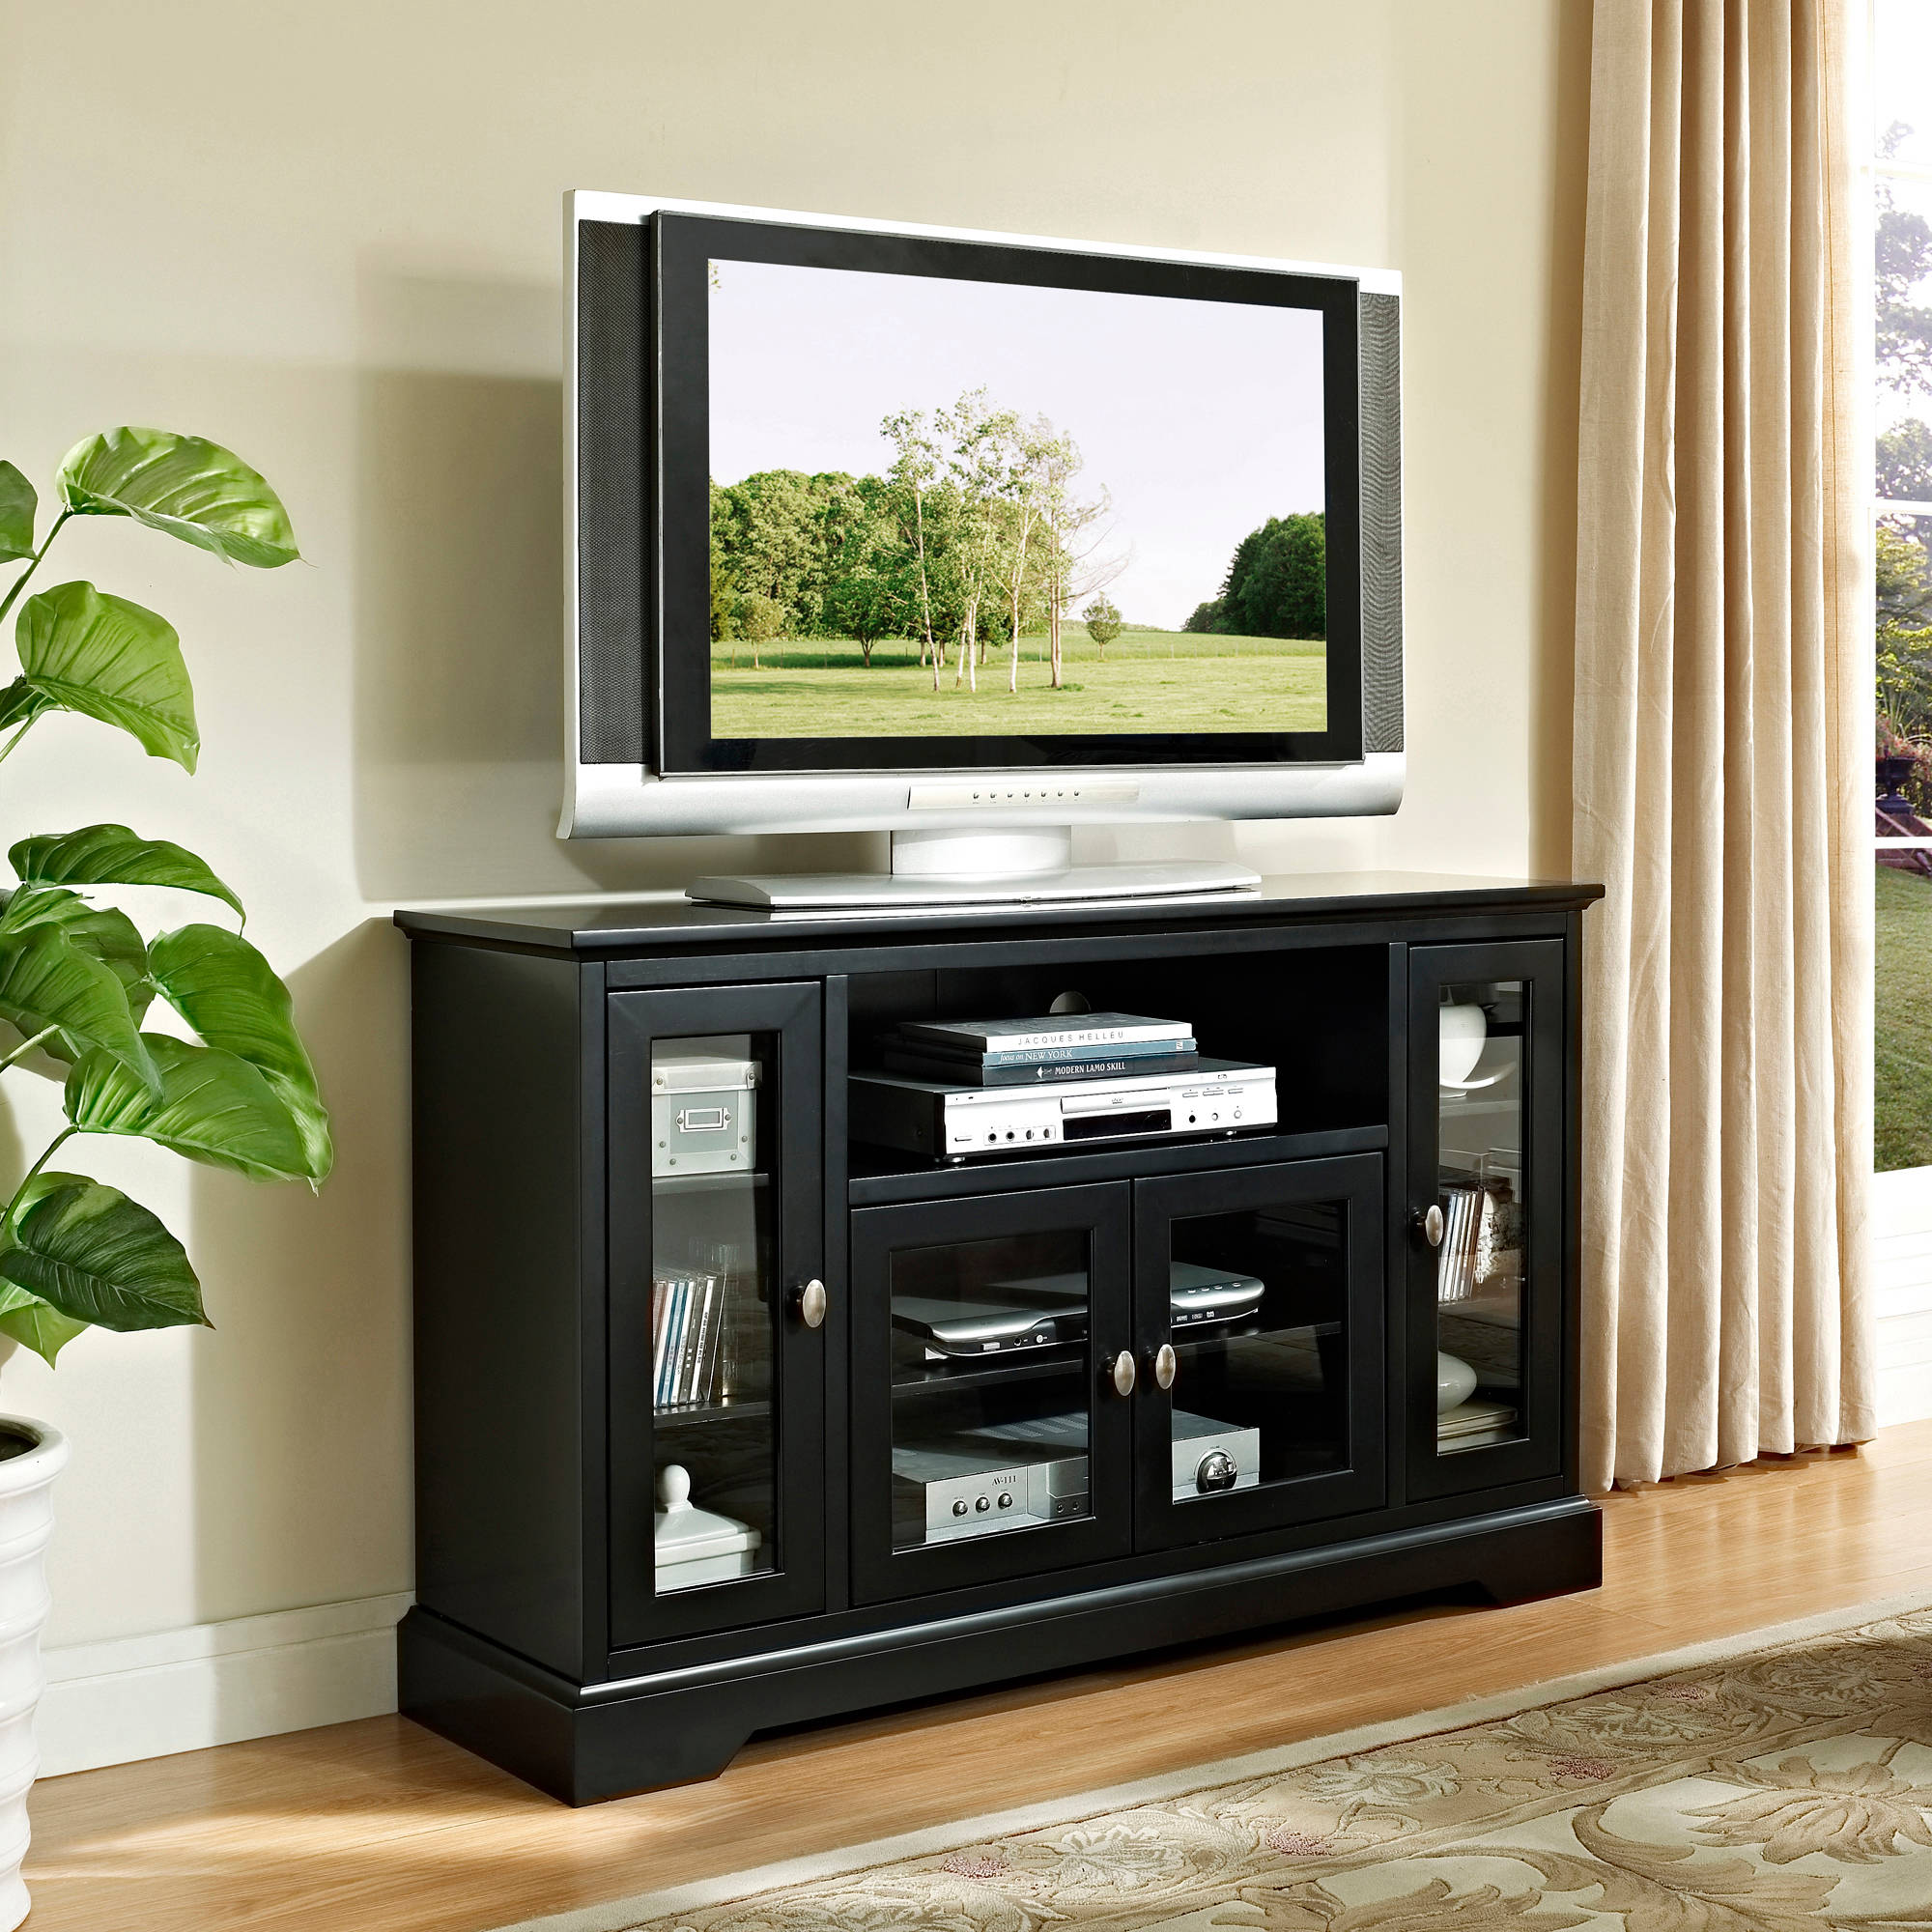 Wood corner tv fireplace tv stand for tvs up to 52 multiple finishes walmart com